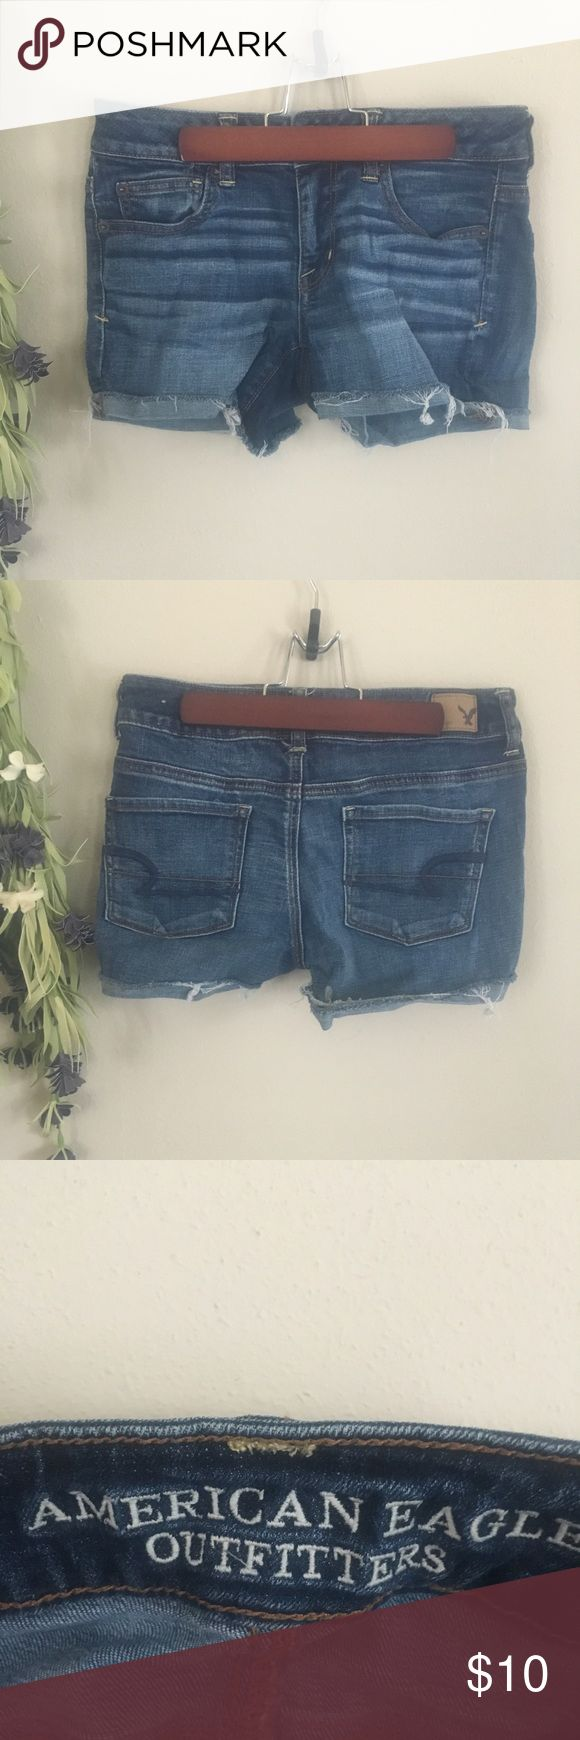 "American Eagle Jean Shorts 🏷 cutoff cuff jean shorts 🔎 good condition  📋 super stretch style - cuff down inseam: 4""  📦  ships within 24 hours (weekdays) 📦 💵  most reasonable offers accepted 💵 💬 questions are always encouraged 💬 📫 receive a response within an hour 📫 American Eagle Outfitters Shorts Jean Shorts"